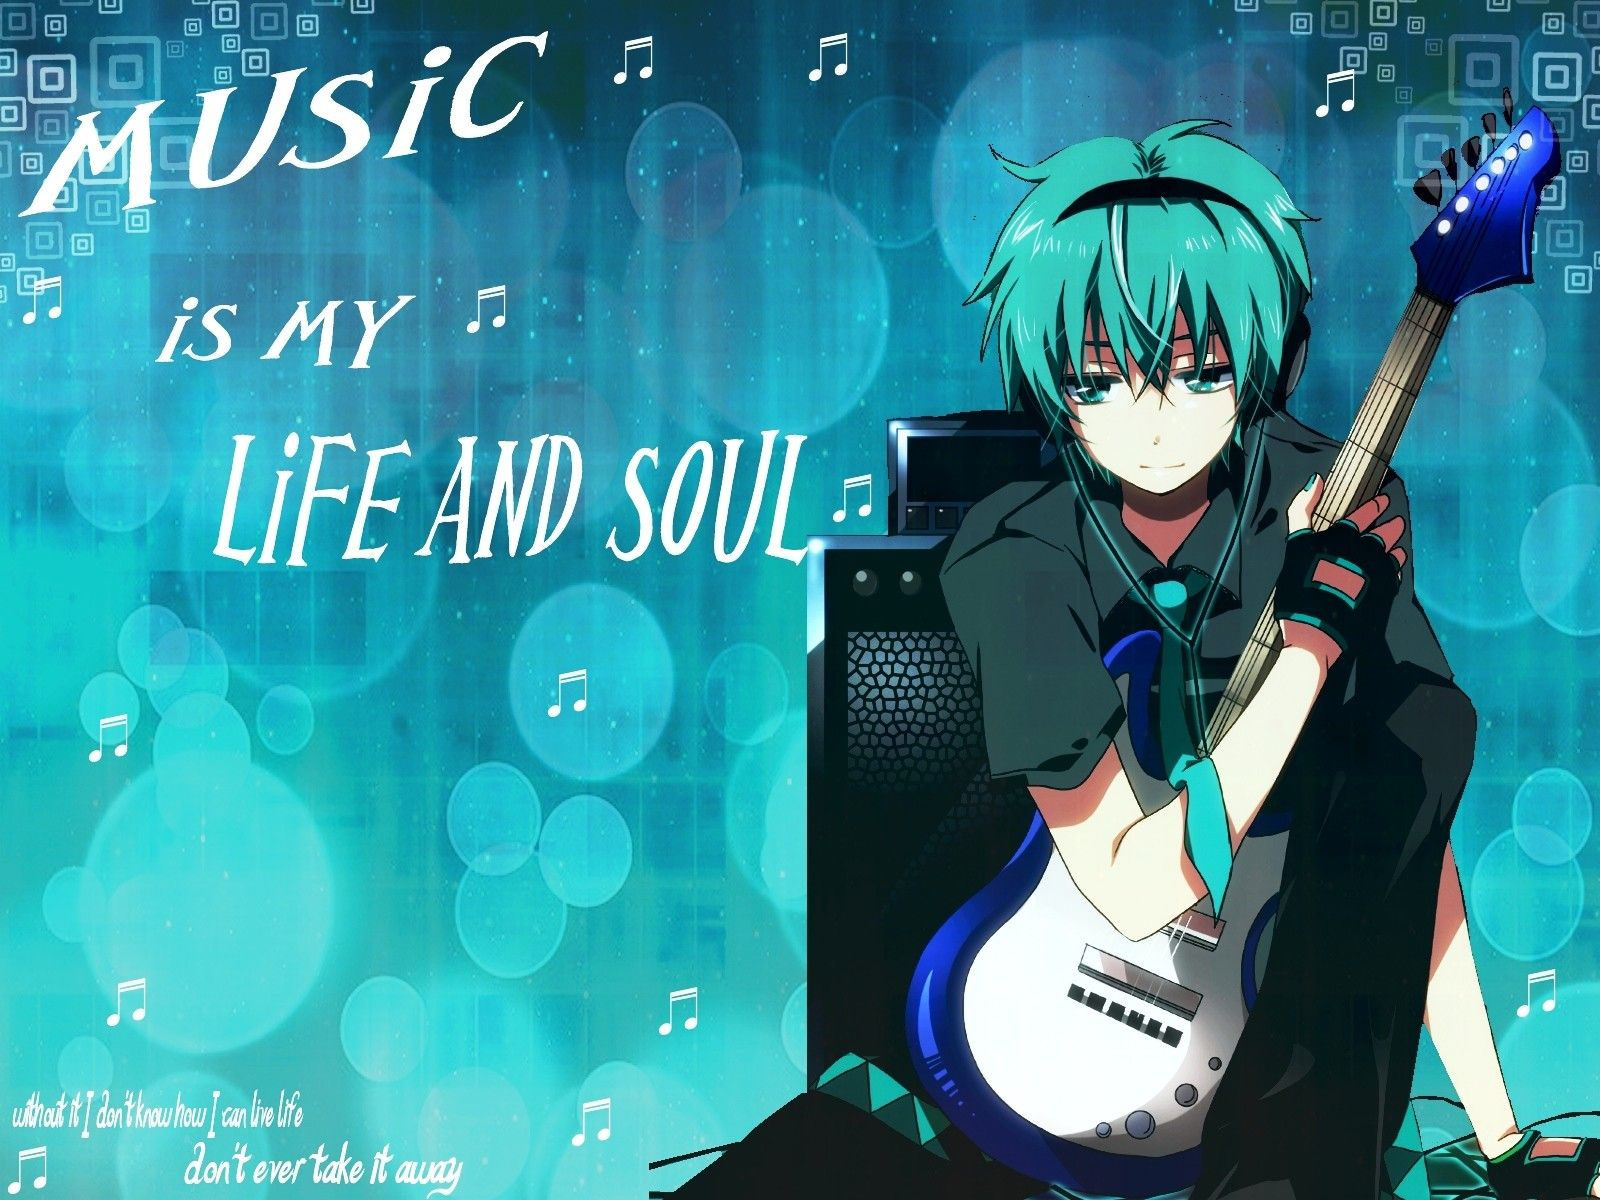 Anime Music Is My Life And Soul Music Wallpaper Anime Music Anime Anime music desktop wallpaper